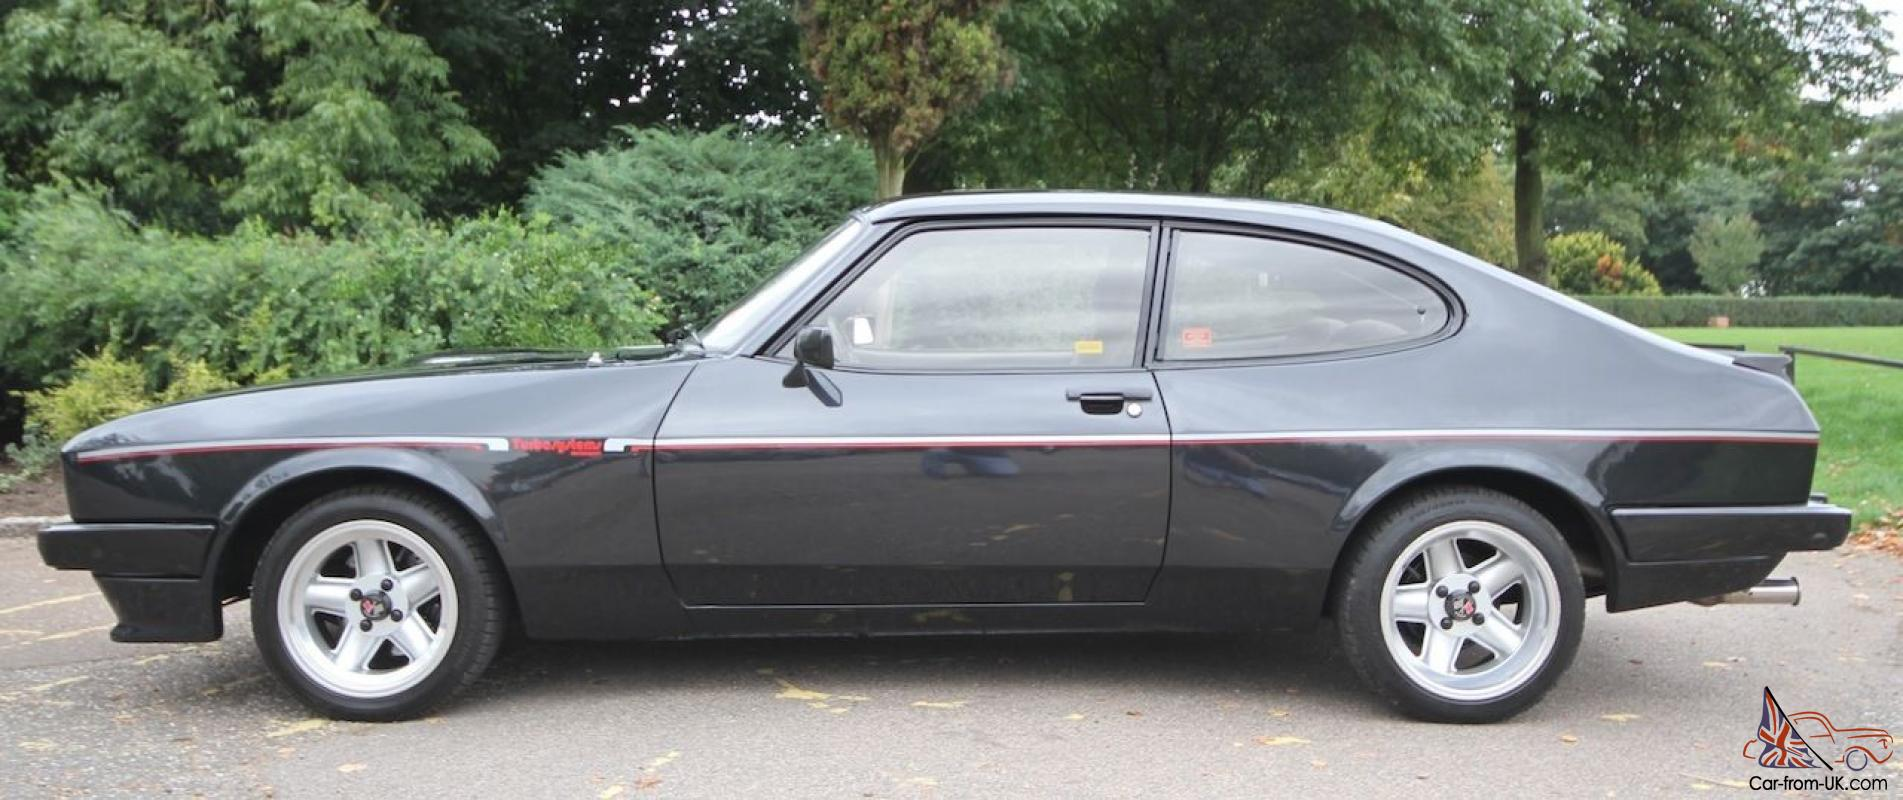 1984 ford capri 2 8 injection x pack from dealership turbo technics. Black Bedroom Furniture Sets. Home Design Ideas